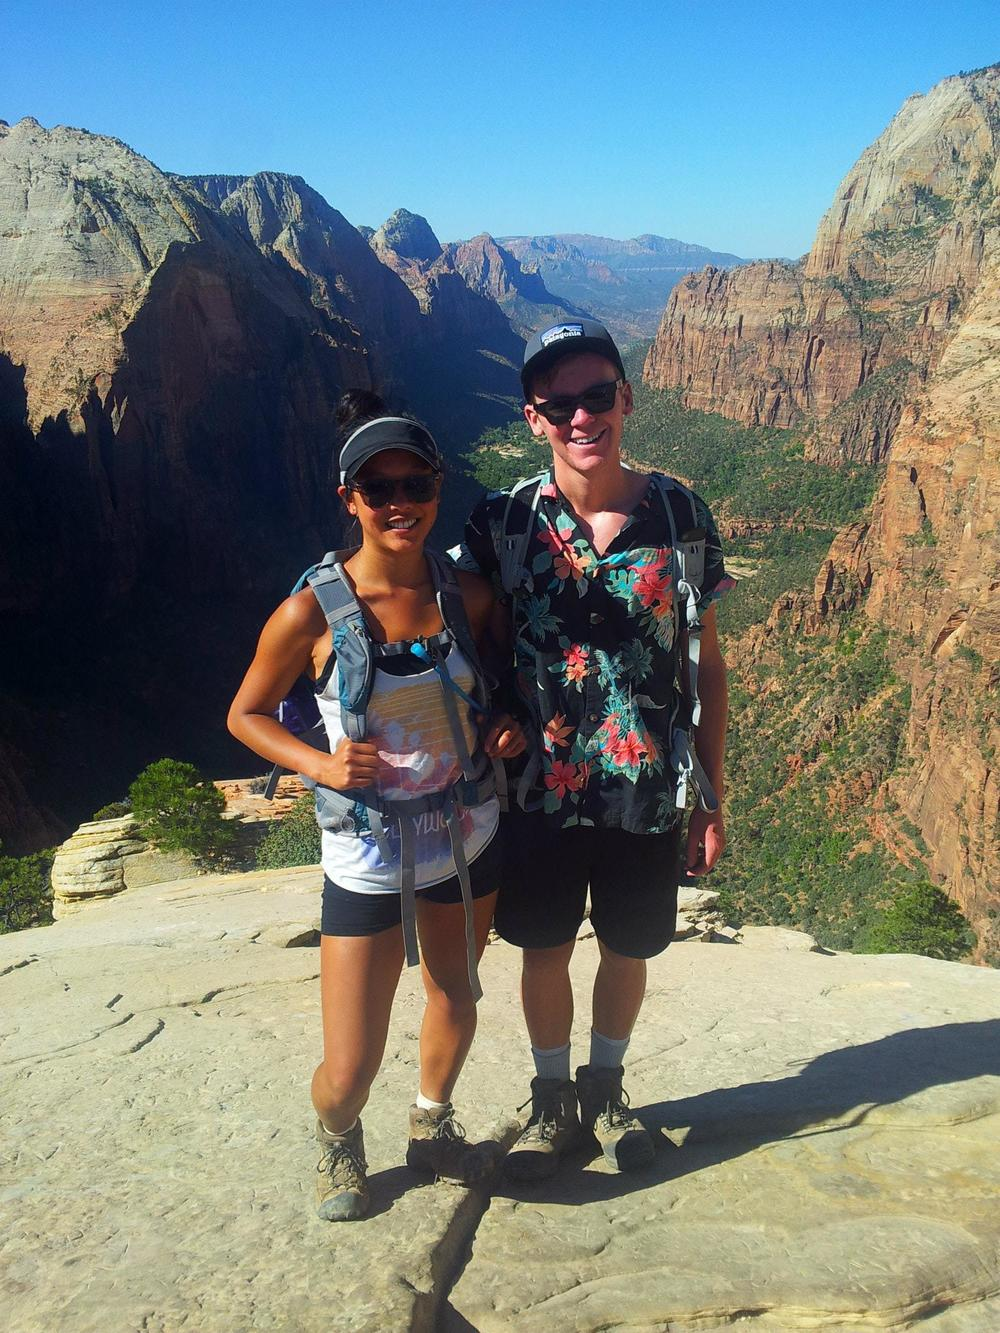 Me and Clark at the top of Angel's Landing!